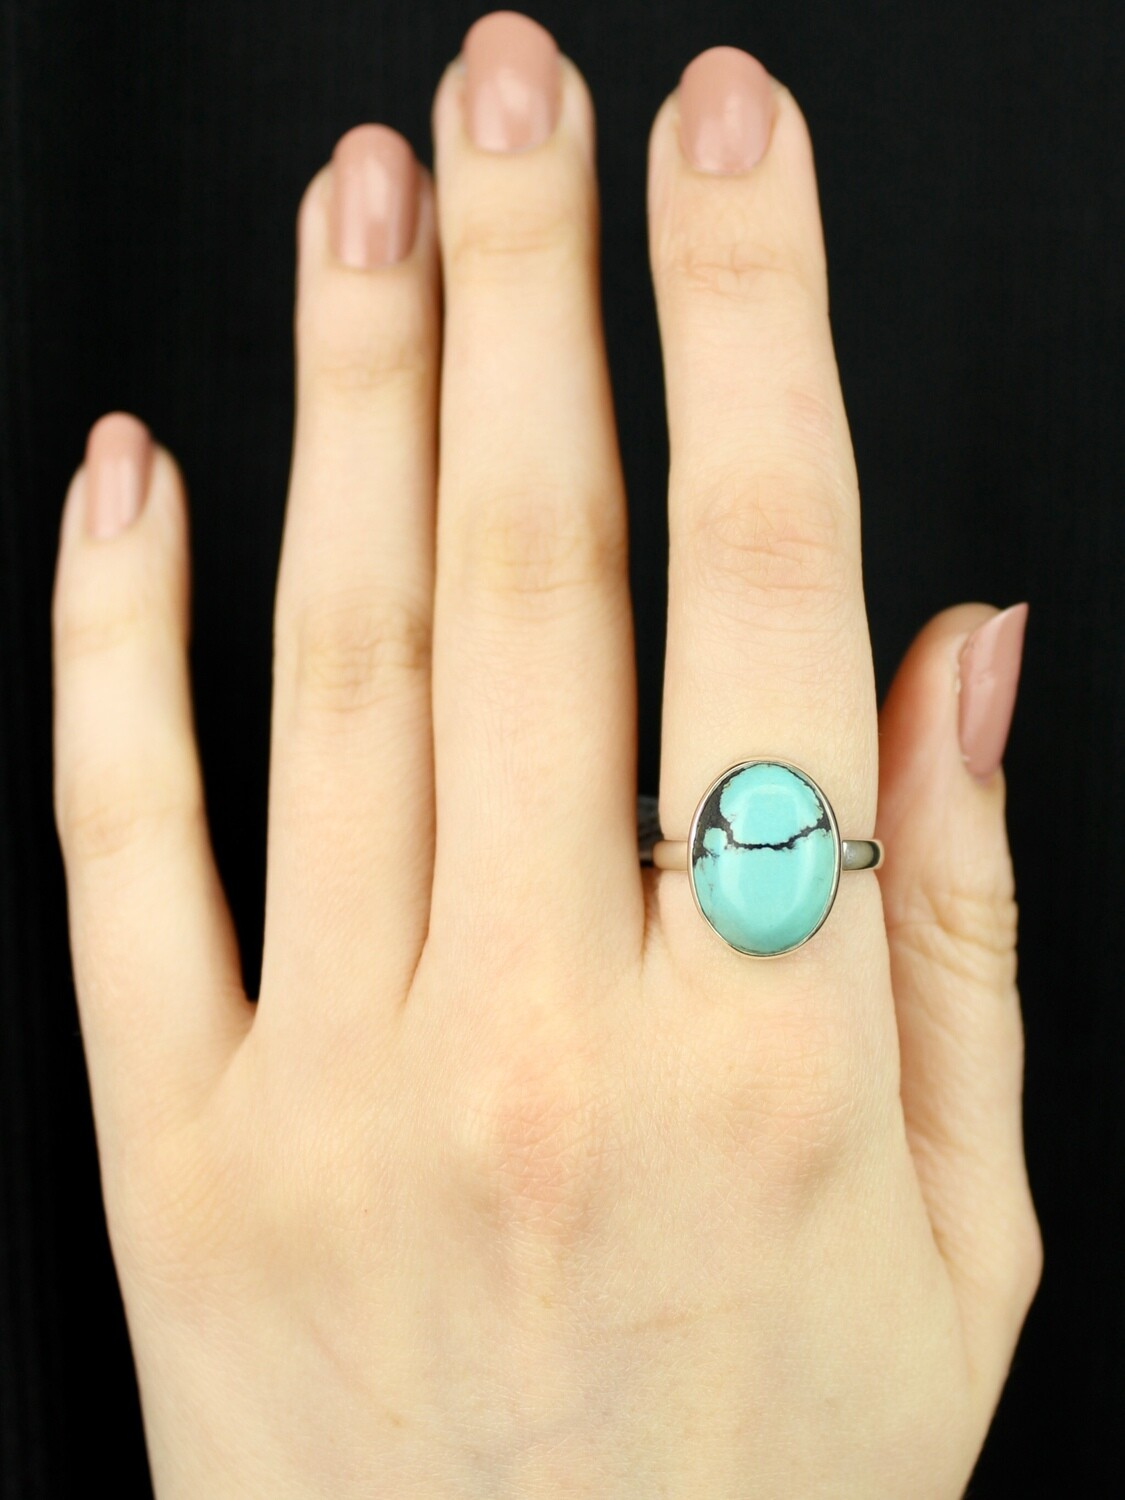 SIZE 8 - Sterling Silver Tibetan Turquoise Ring - RIG8112